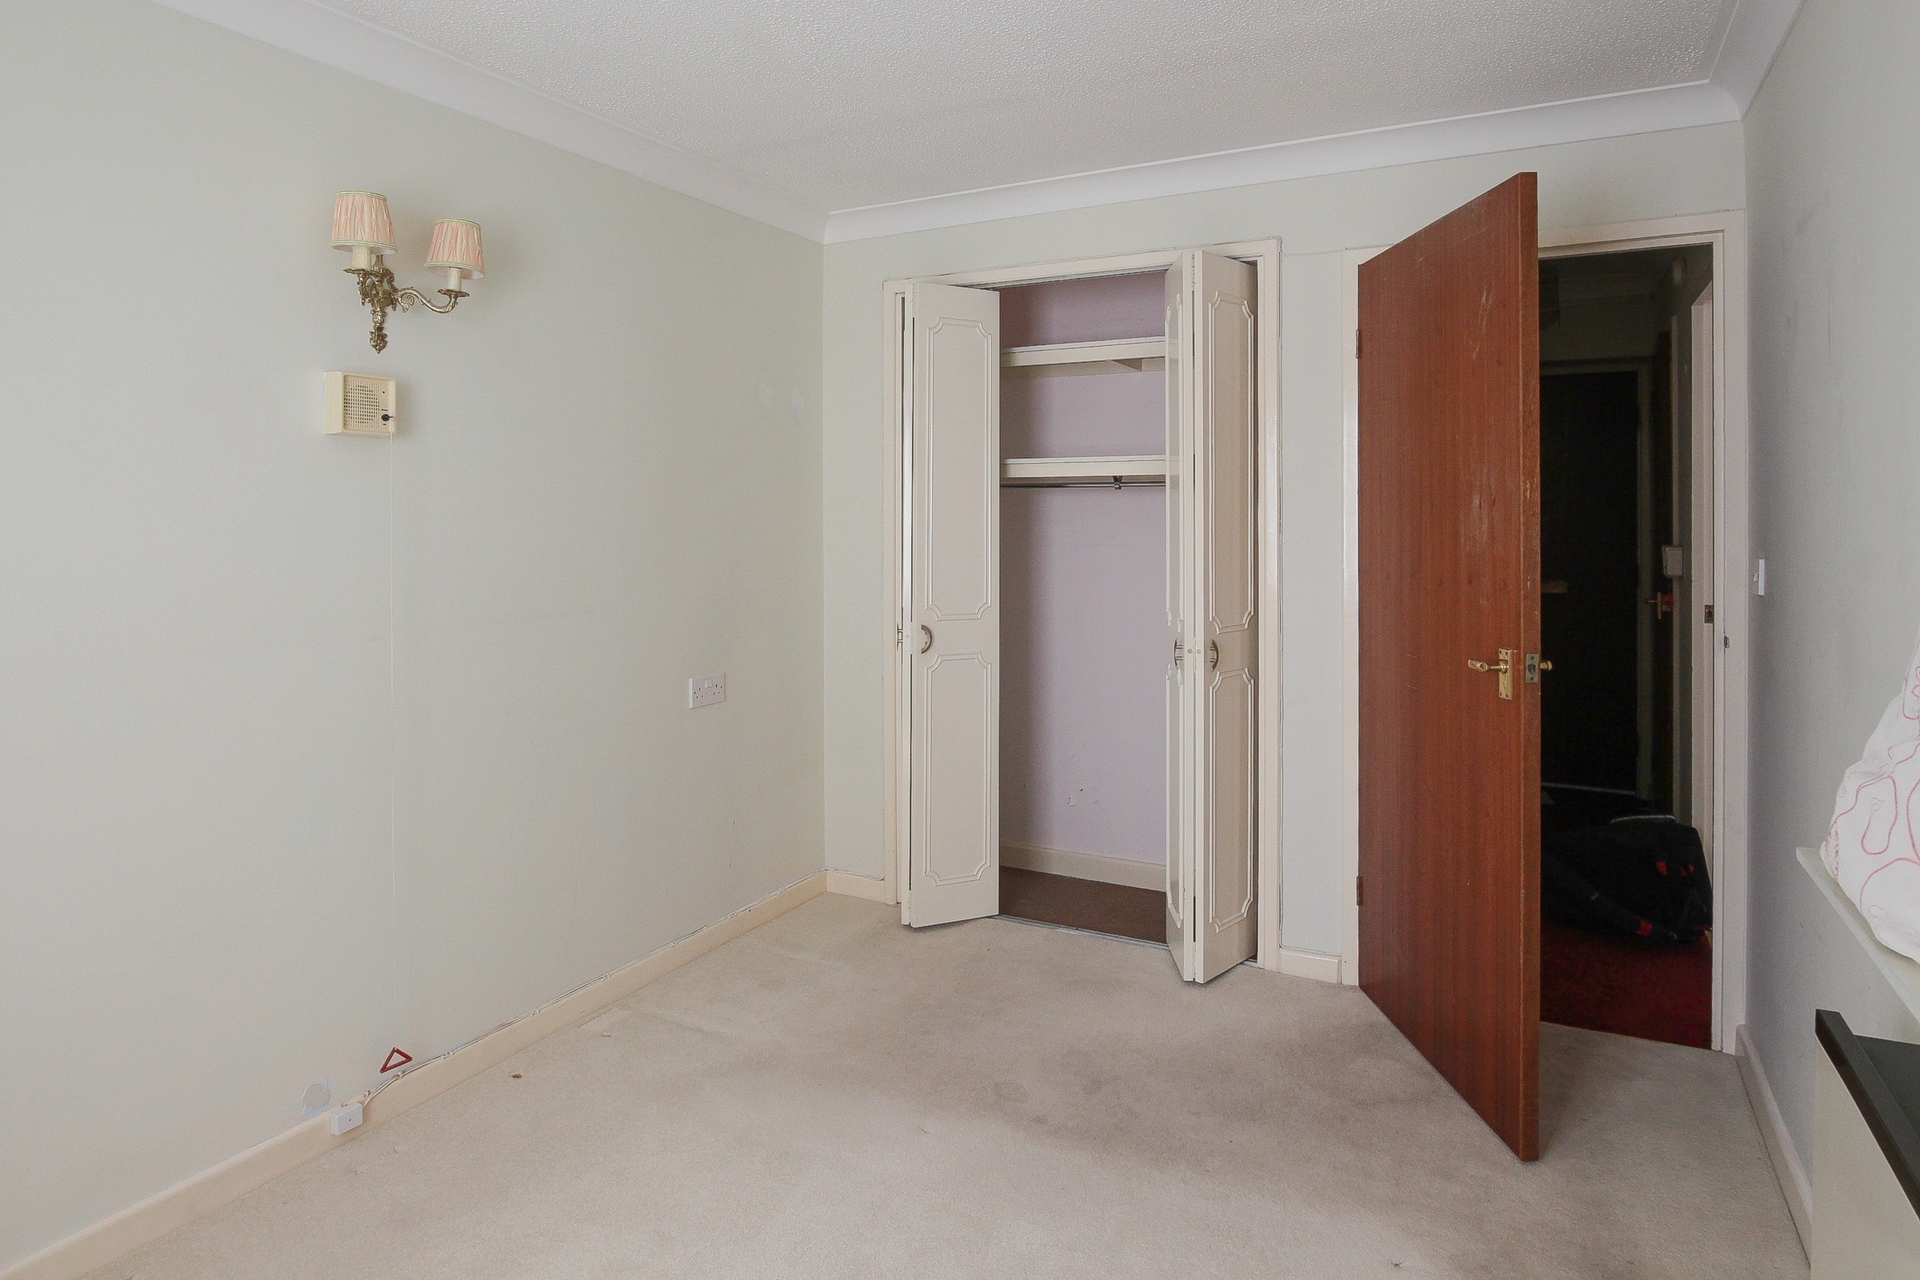 1 bed flat to rent in Hunting Gate, Birchington, CT7  - Property Image 6